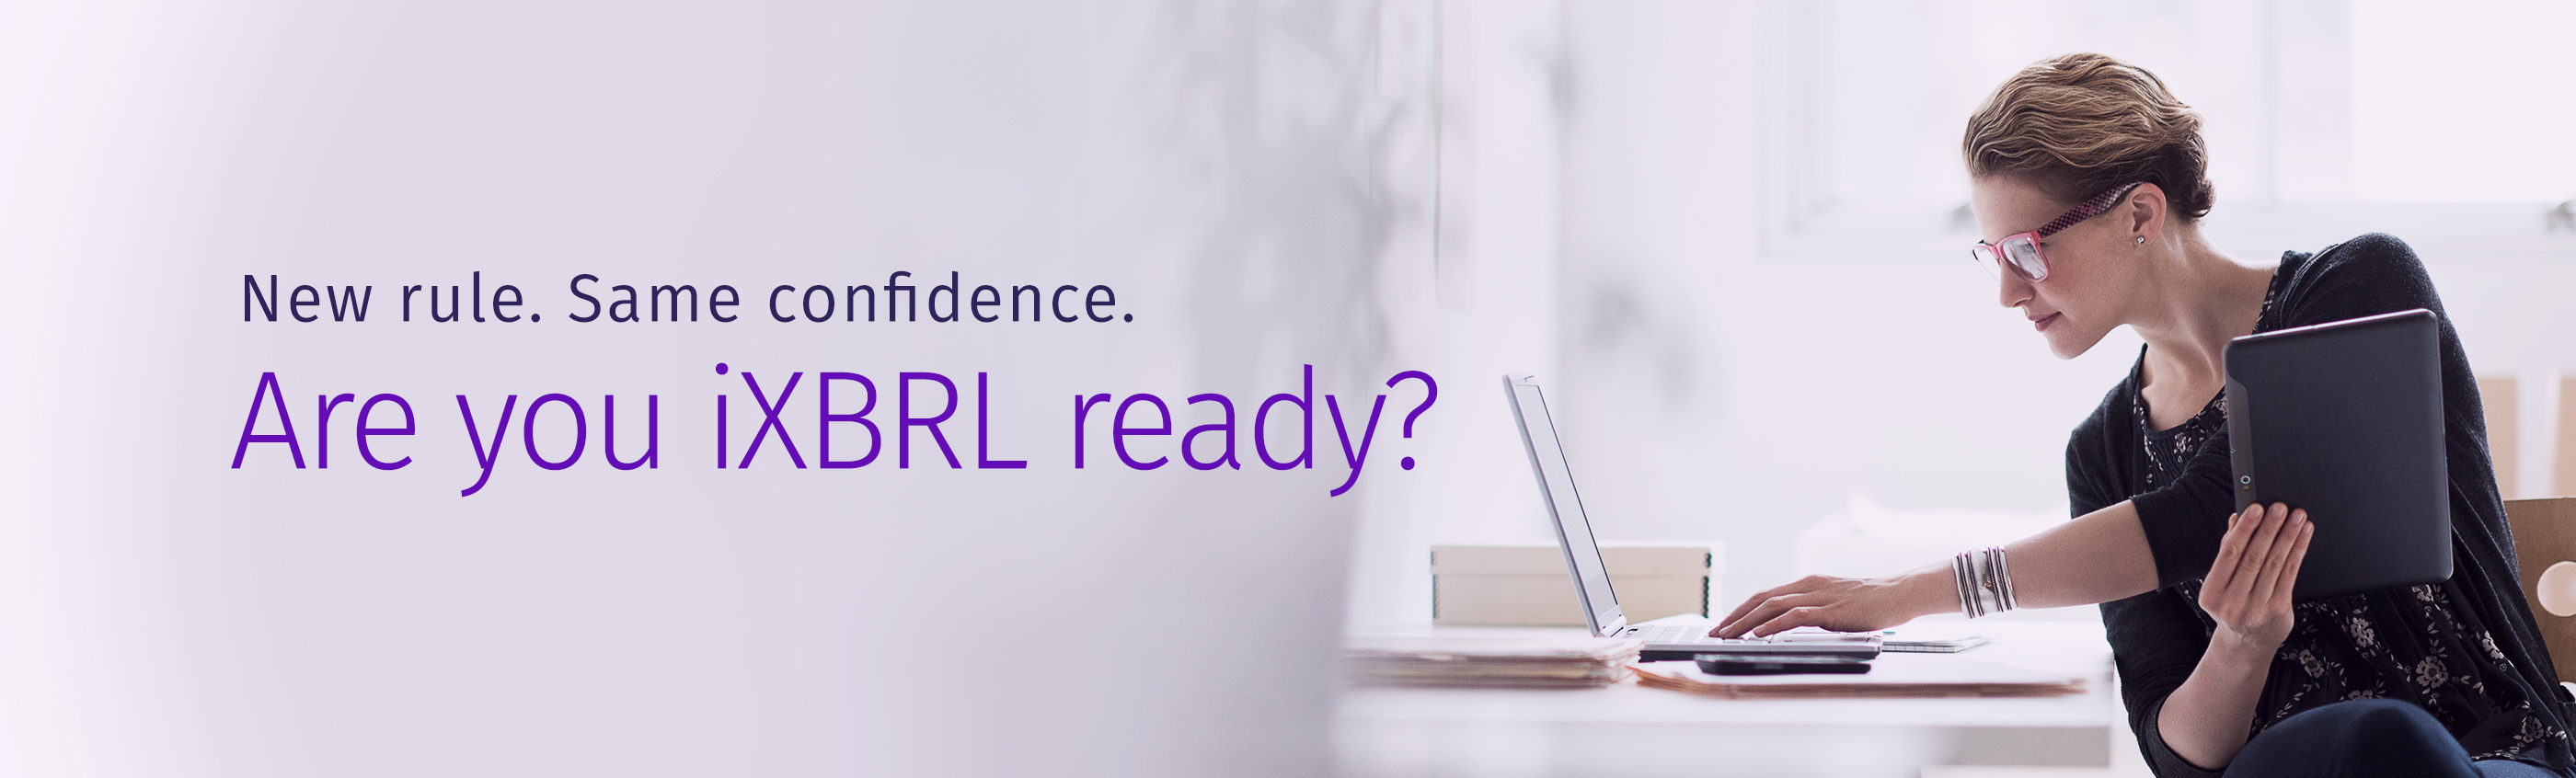 Woman testing her knowledge, taking the iXBRL quizzes.